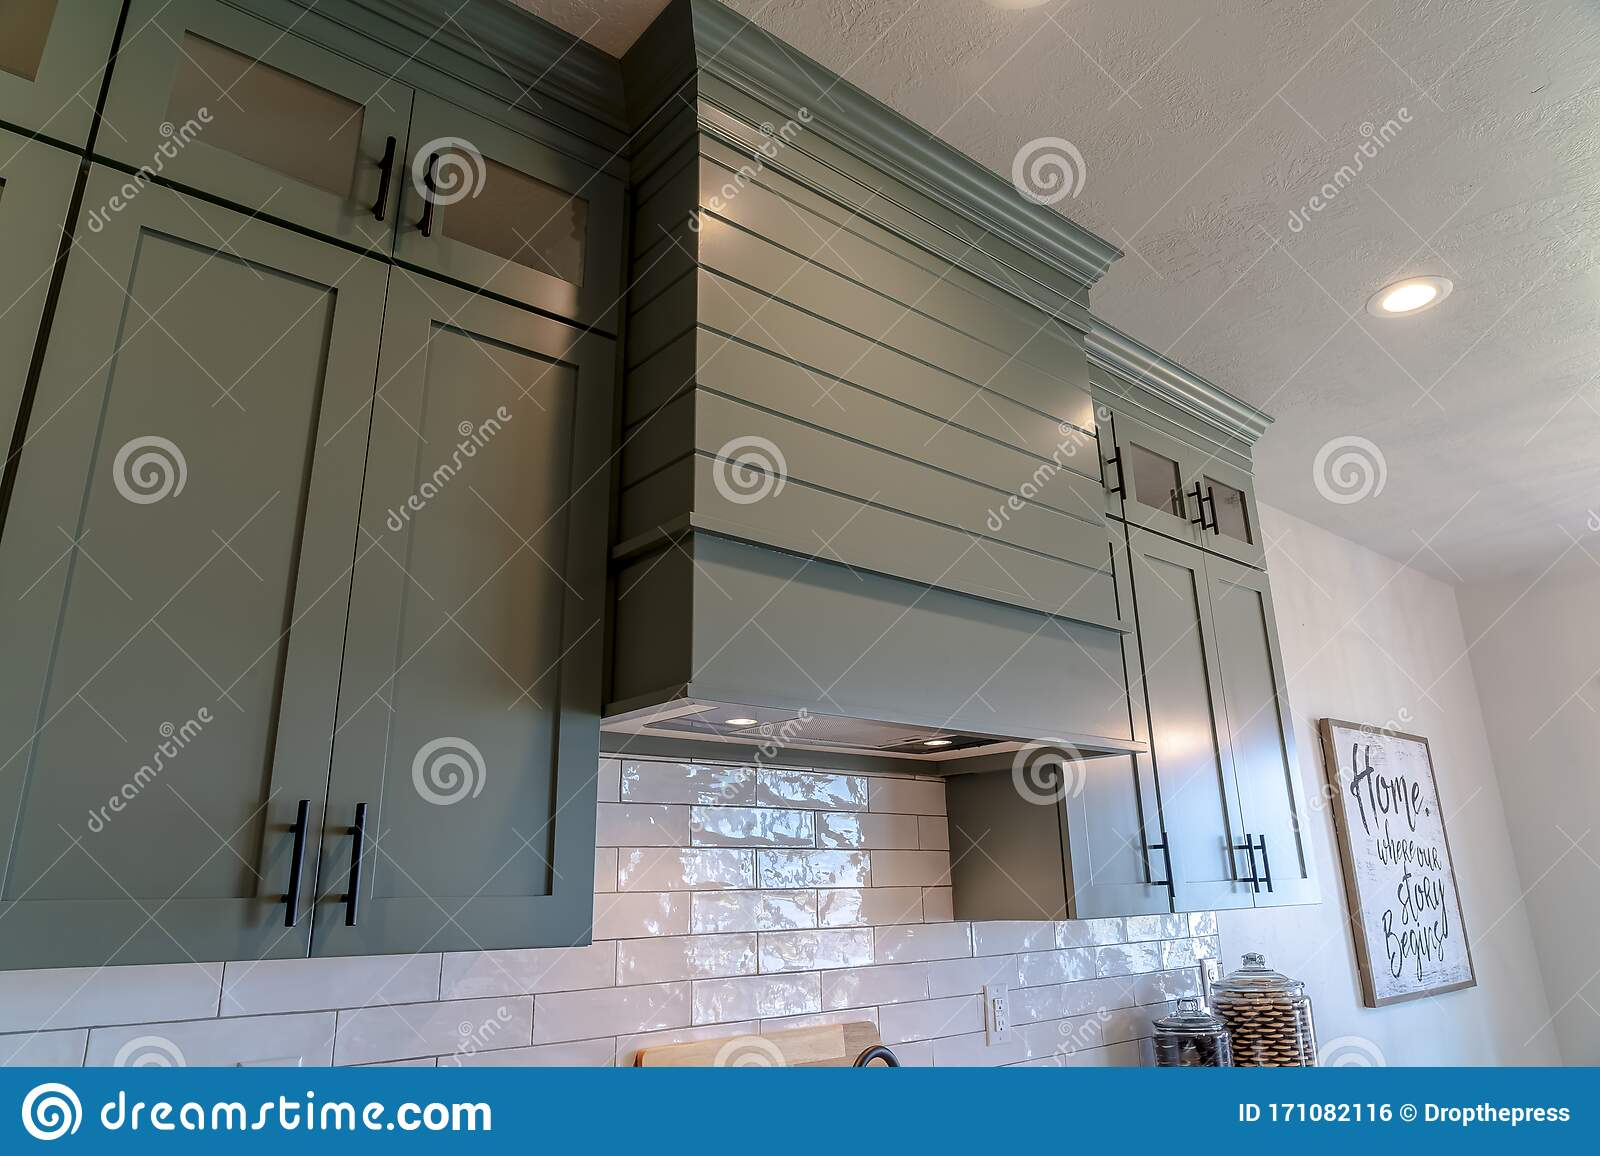 - Kitchen Interior With Hanging Cabinets Against Tile Backsplash And